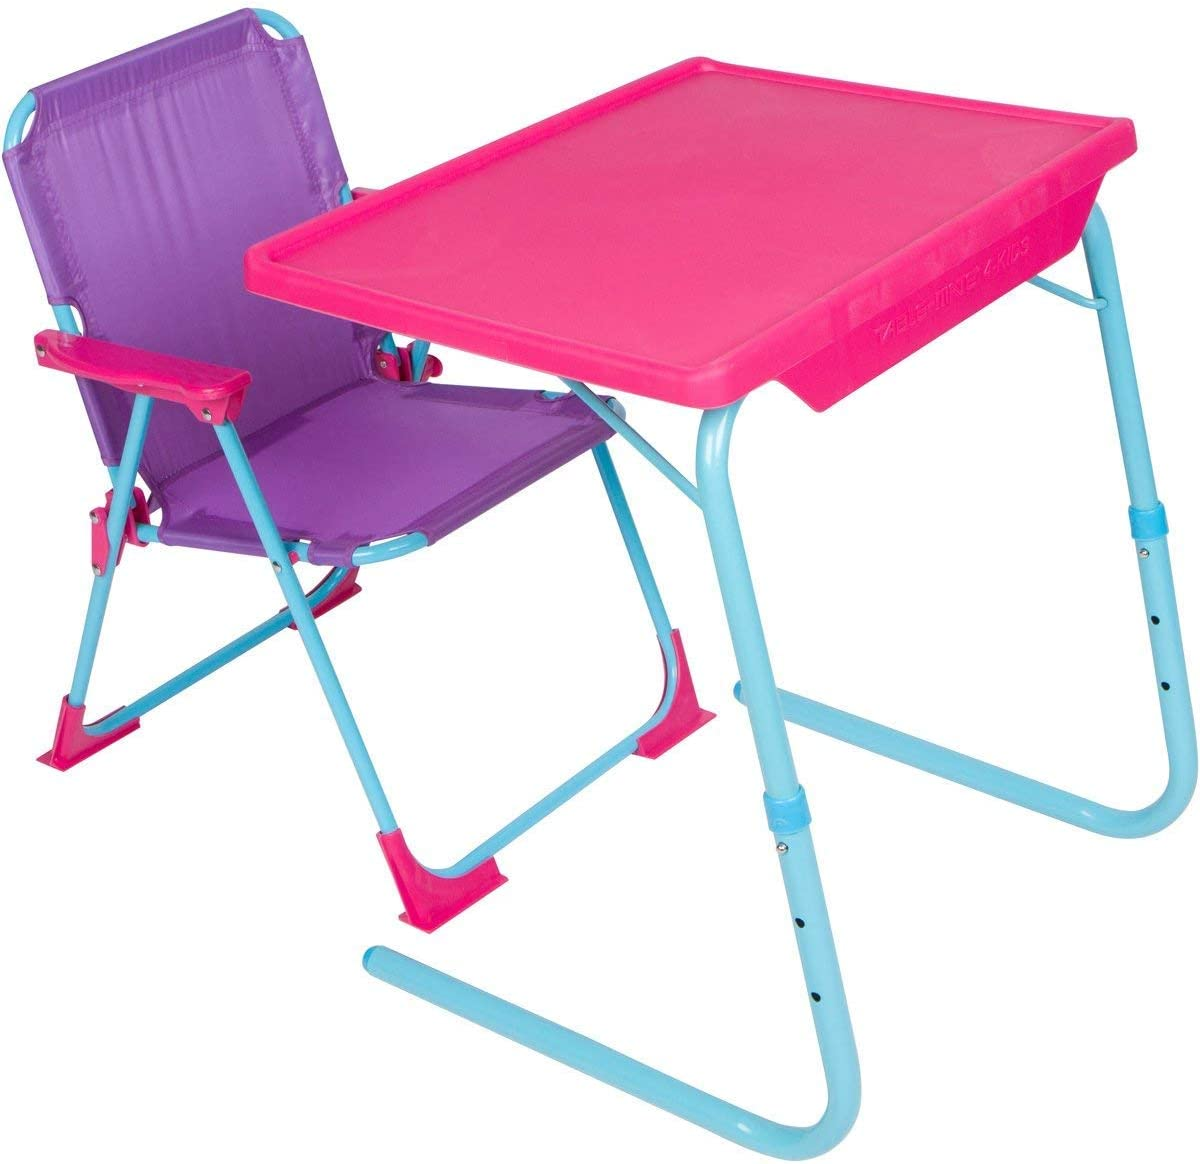 [Table-Mate ] [Table-Mate 4 Kids Plastic Folding Table and Chair Set] (並行輸入品)